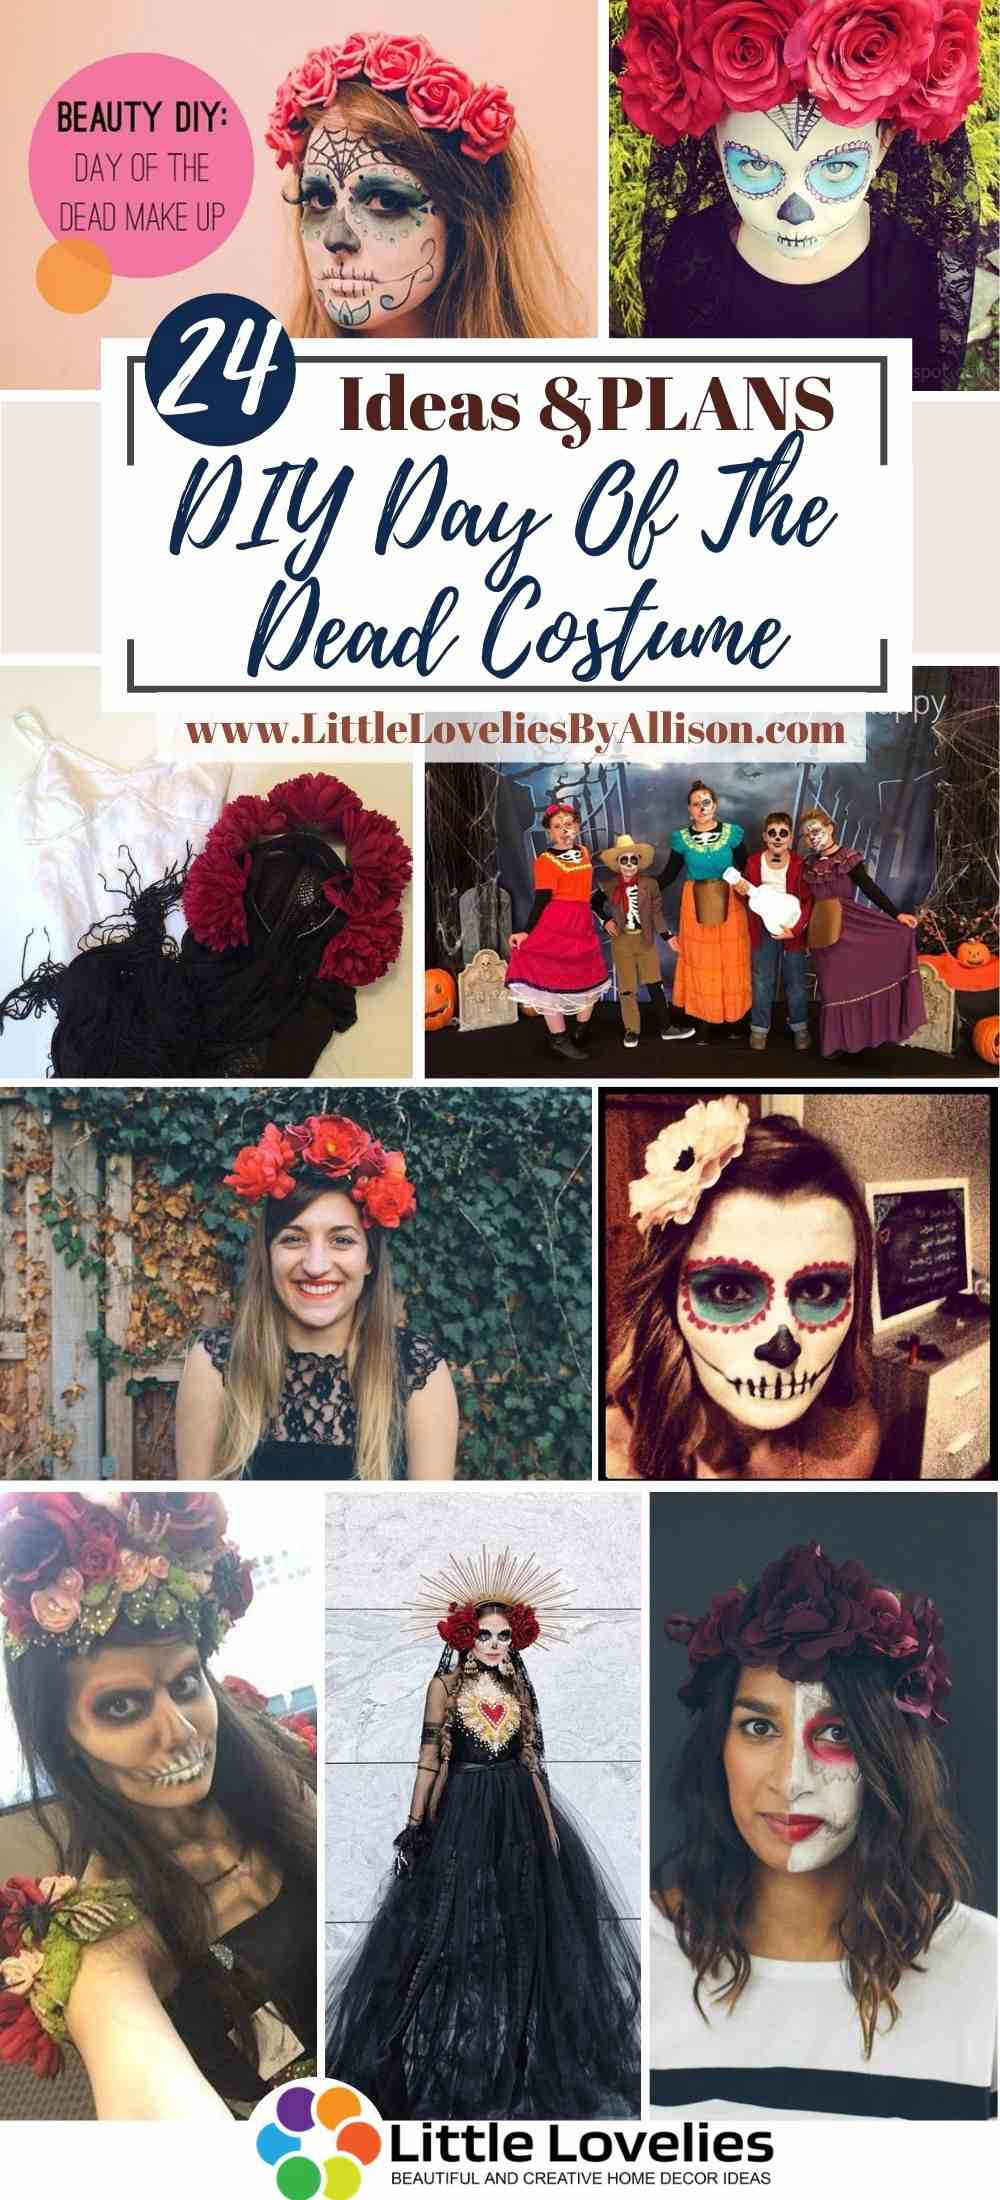 Best-DIY-Day-Of-The-Dead-Costume